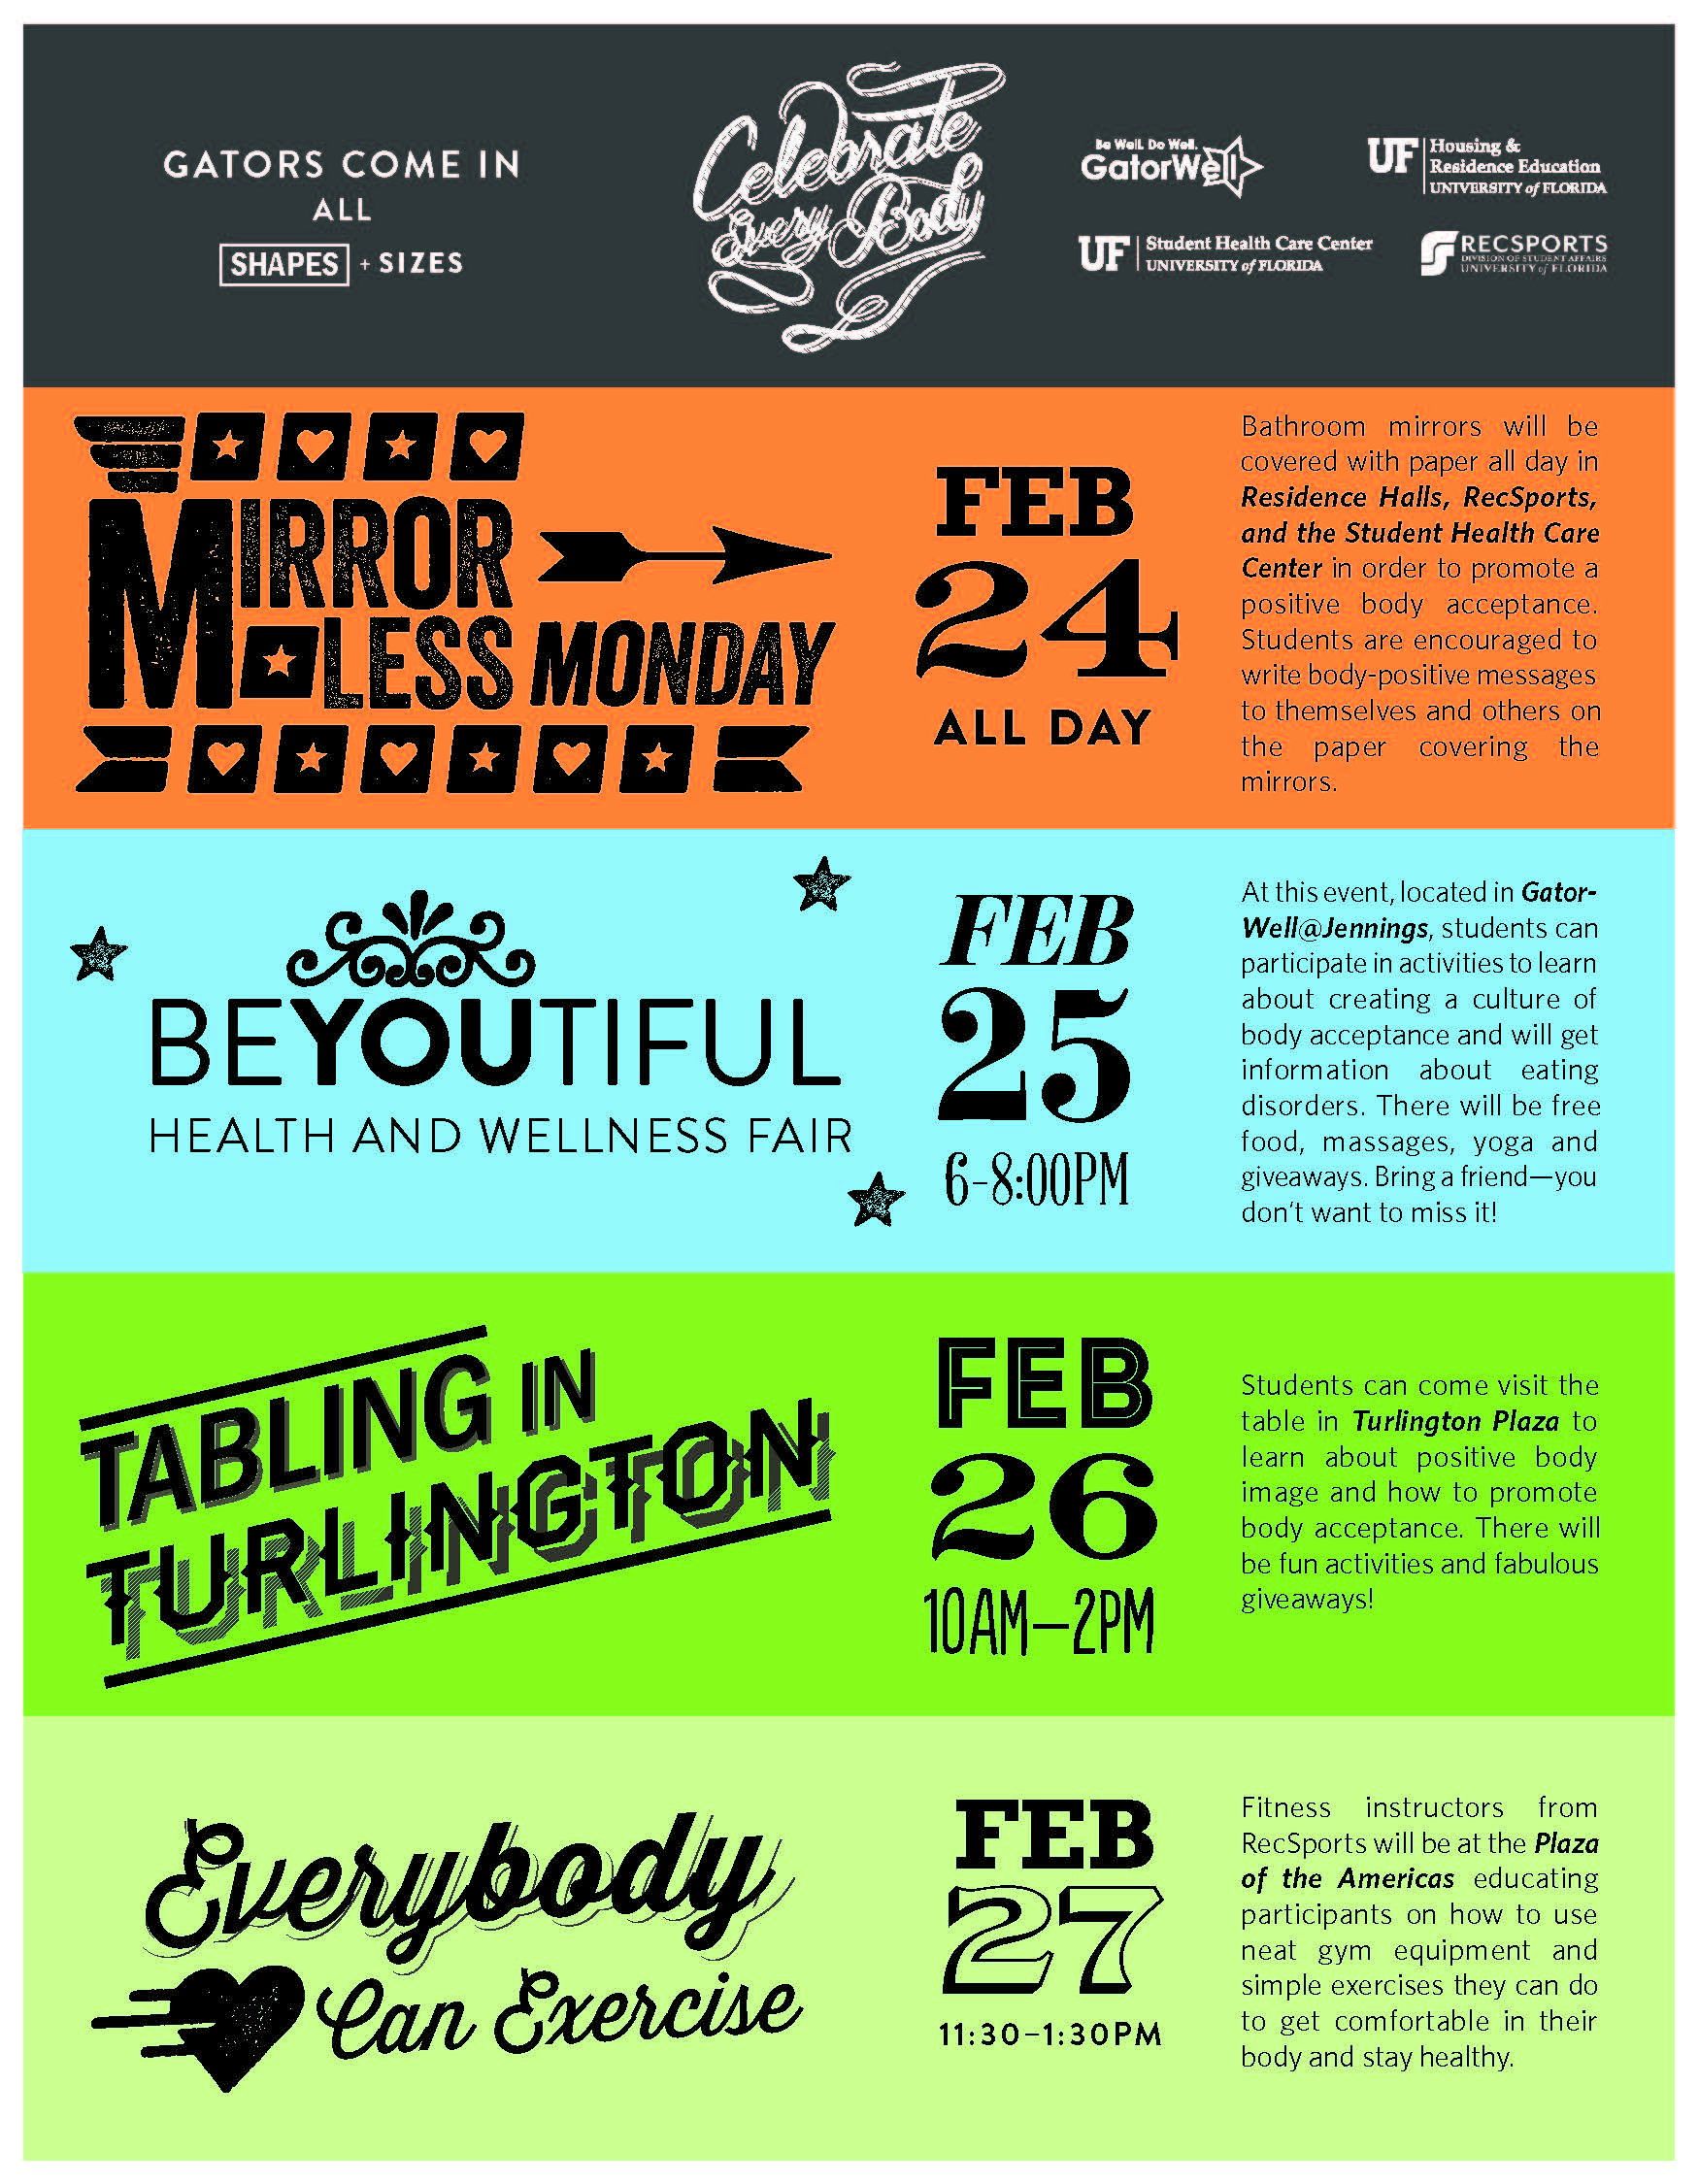 Feb 24 27 Celebrate Every Body Campus Events Student